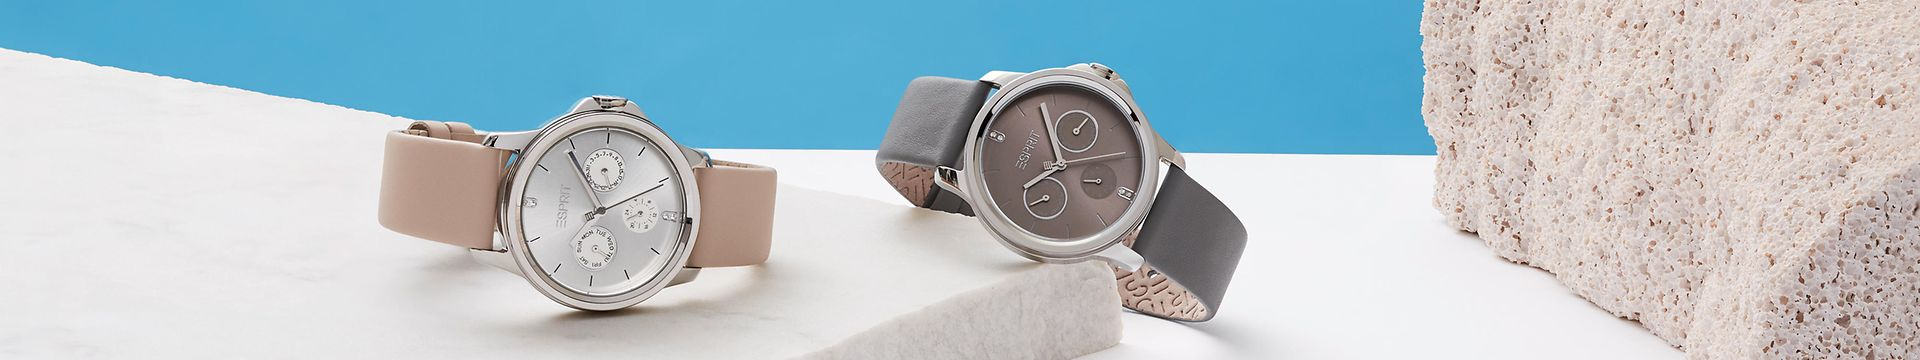 152021 - Women - Accessories - Watches -Leather - TC banner - IMG